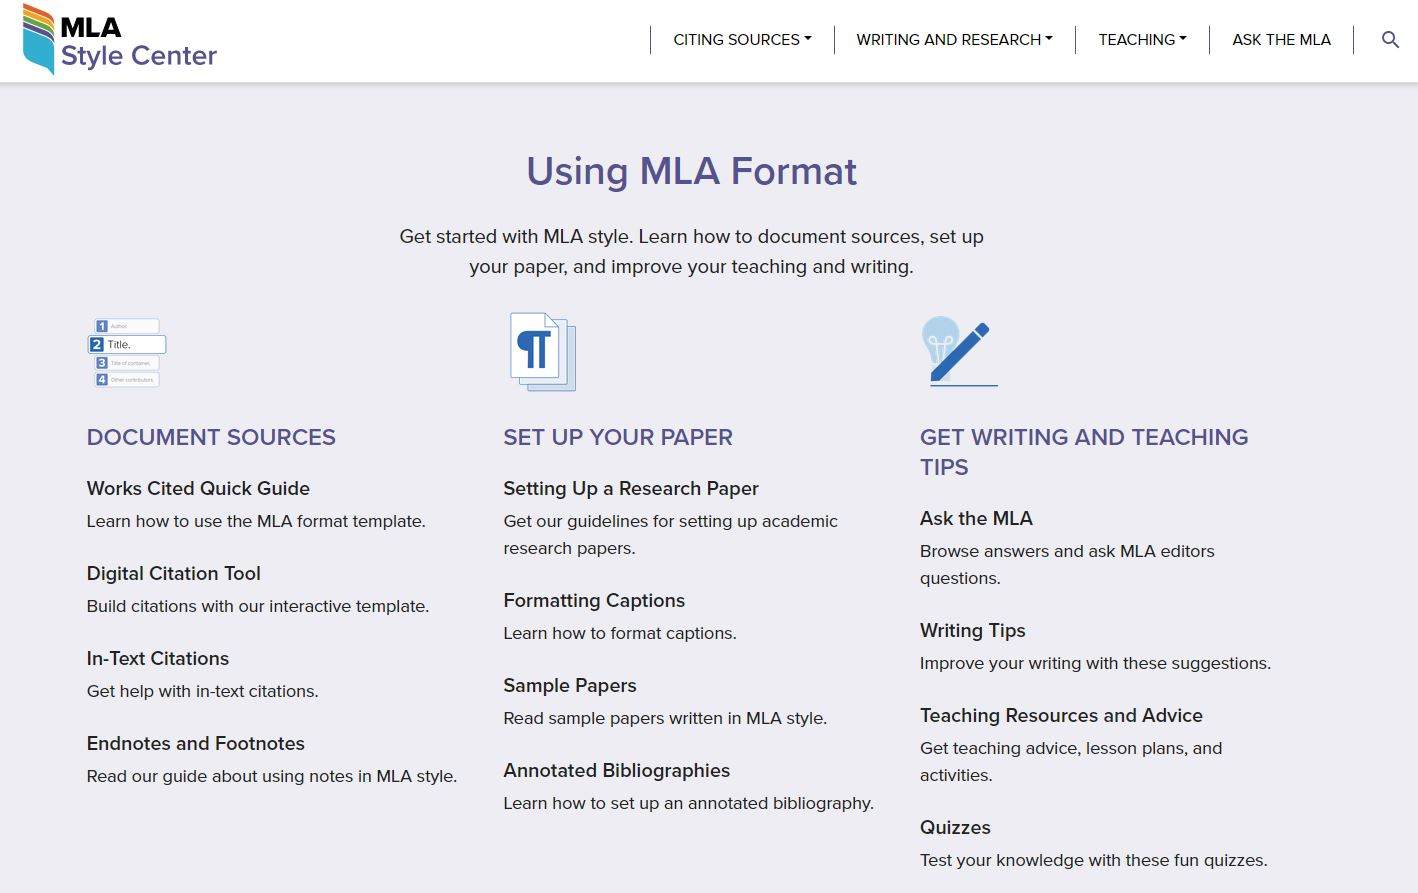 Screenshot of Using MLA Format from MLA Style Center [click image to visit]